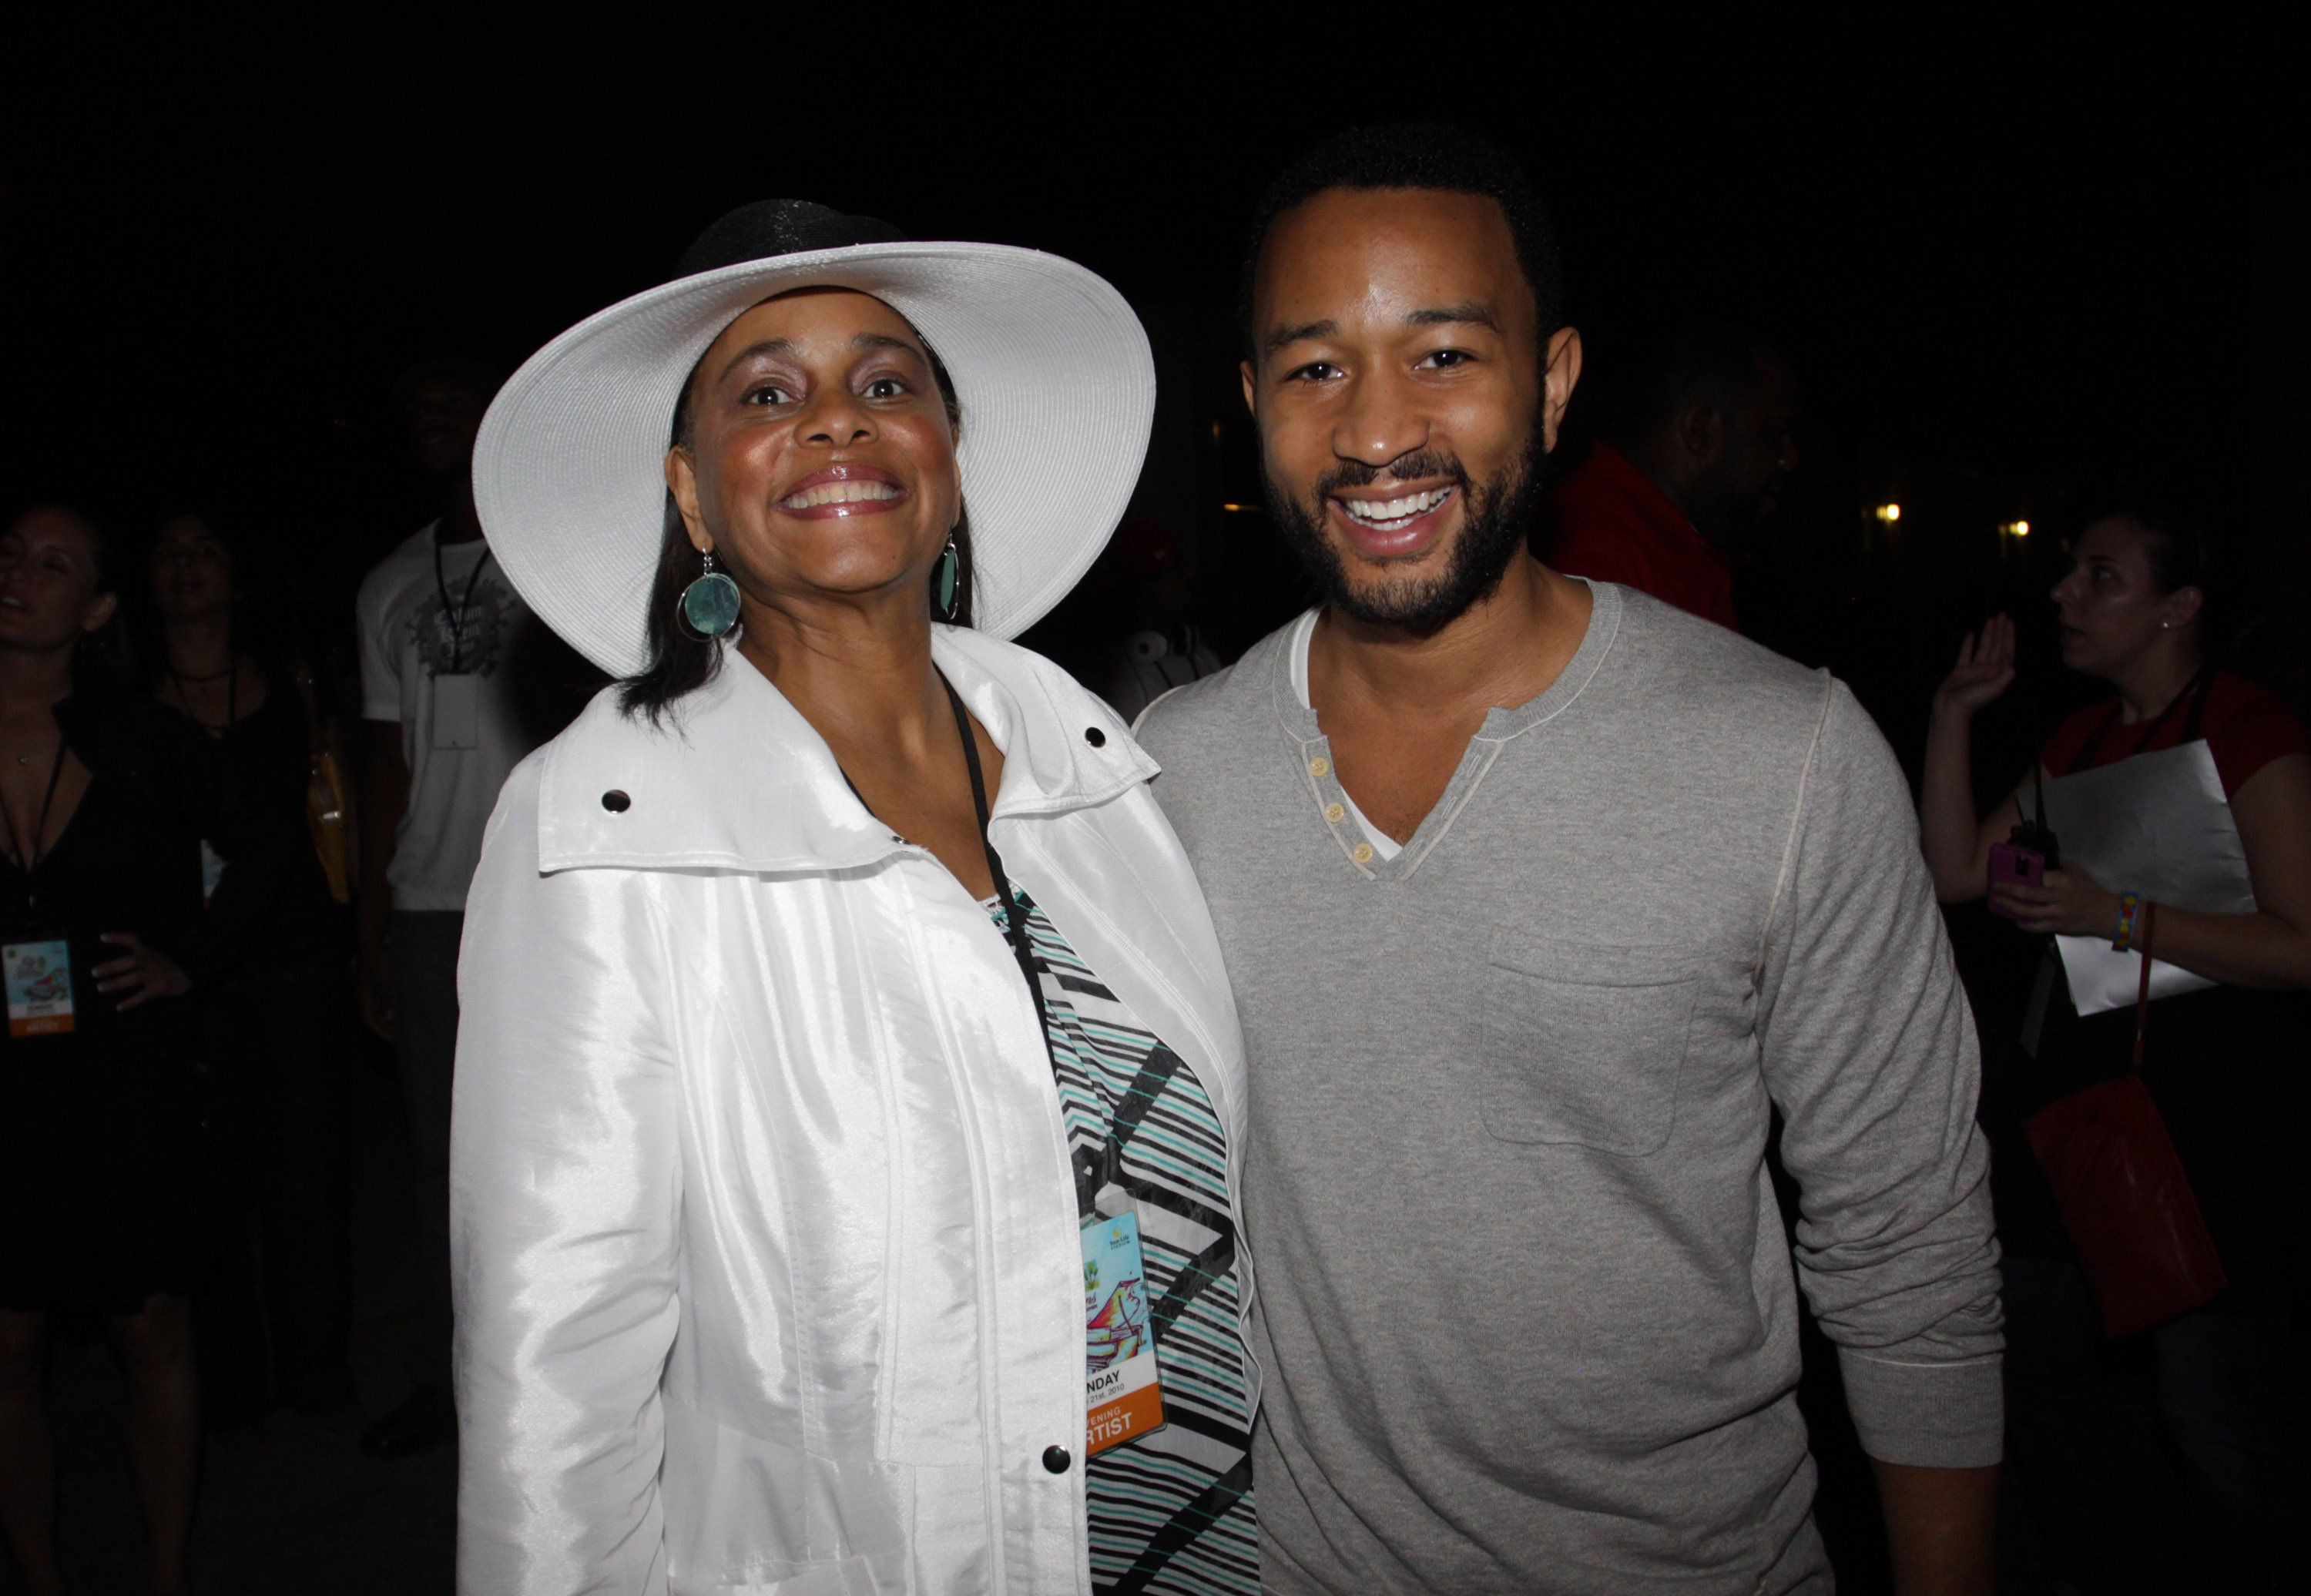 John Legend (r) and his mother Phyllis Stephens attend Jazz In The Gardens 2010 on March 21, 2010 in Miami Gardens, Florida. | Photo: GettyImages